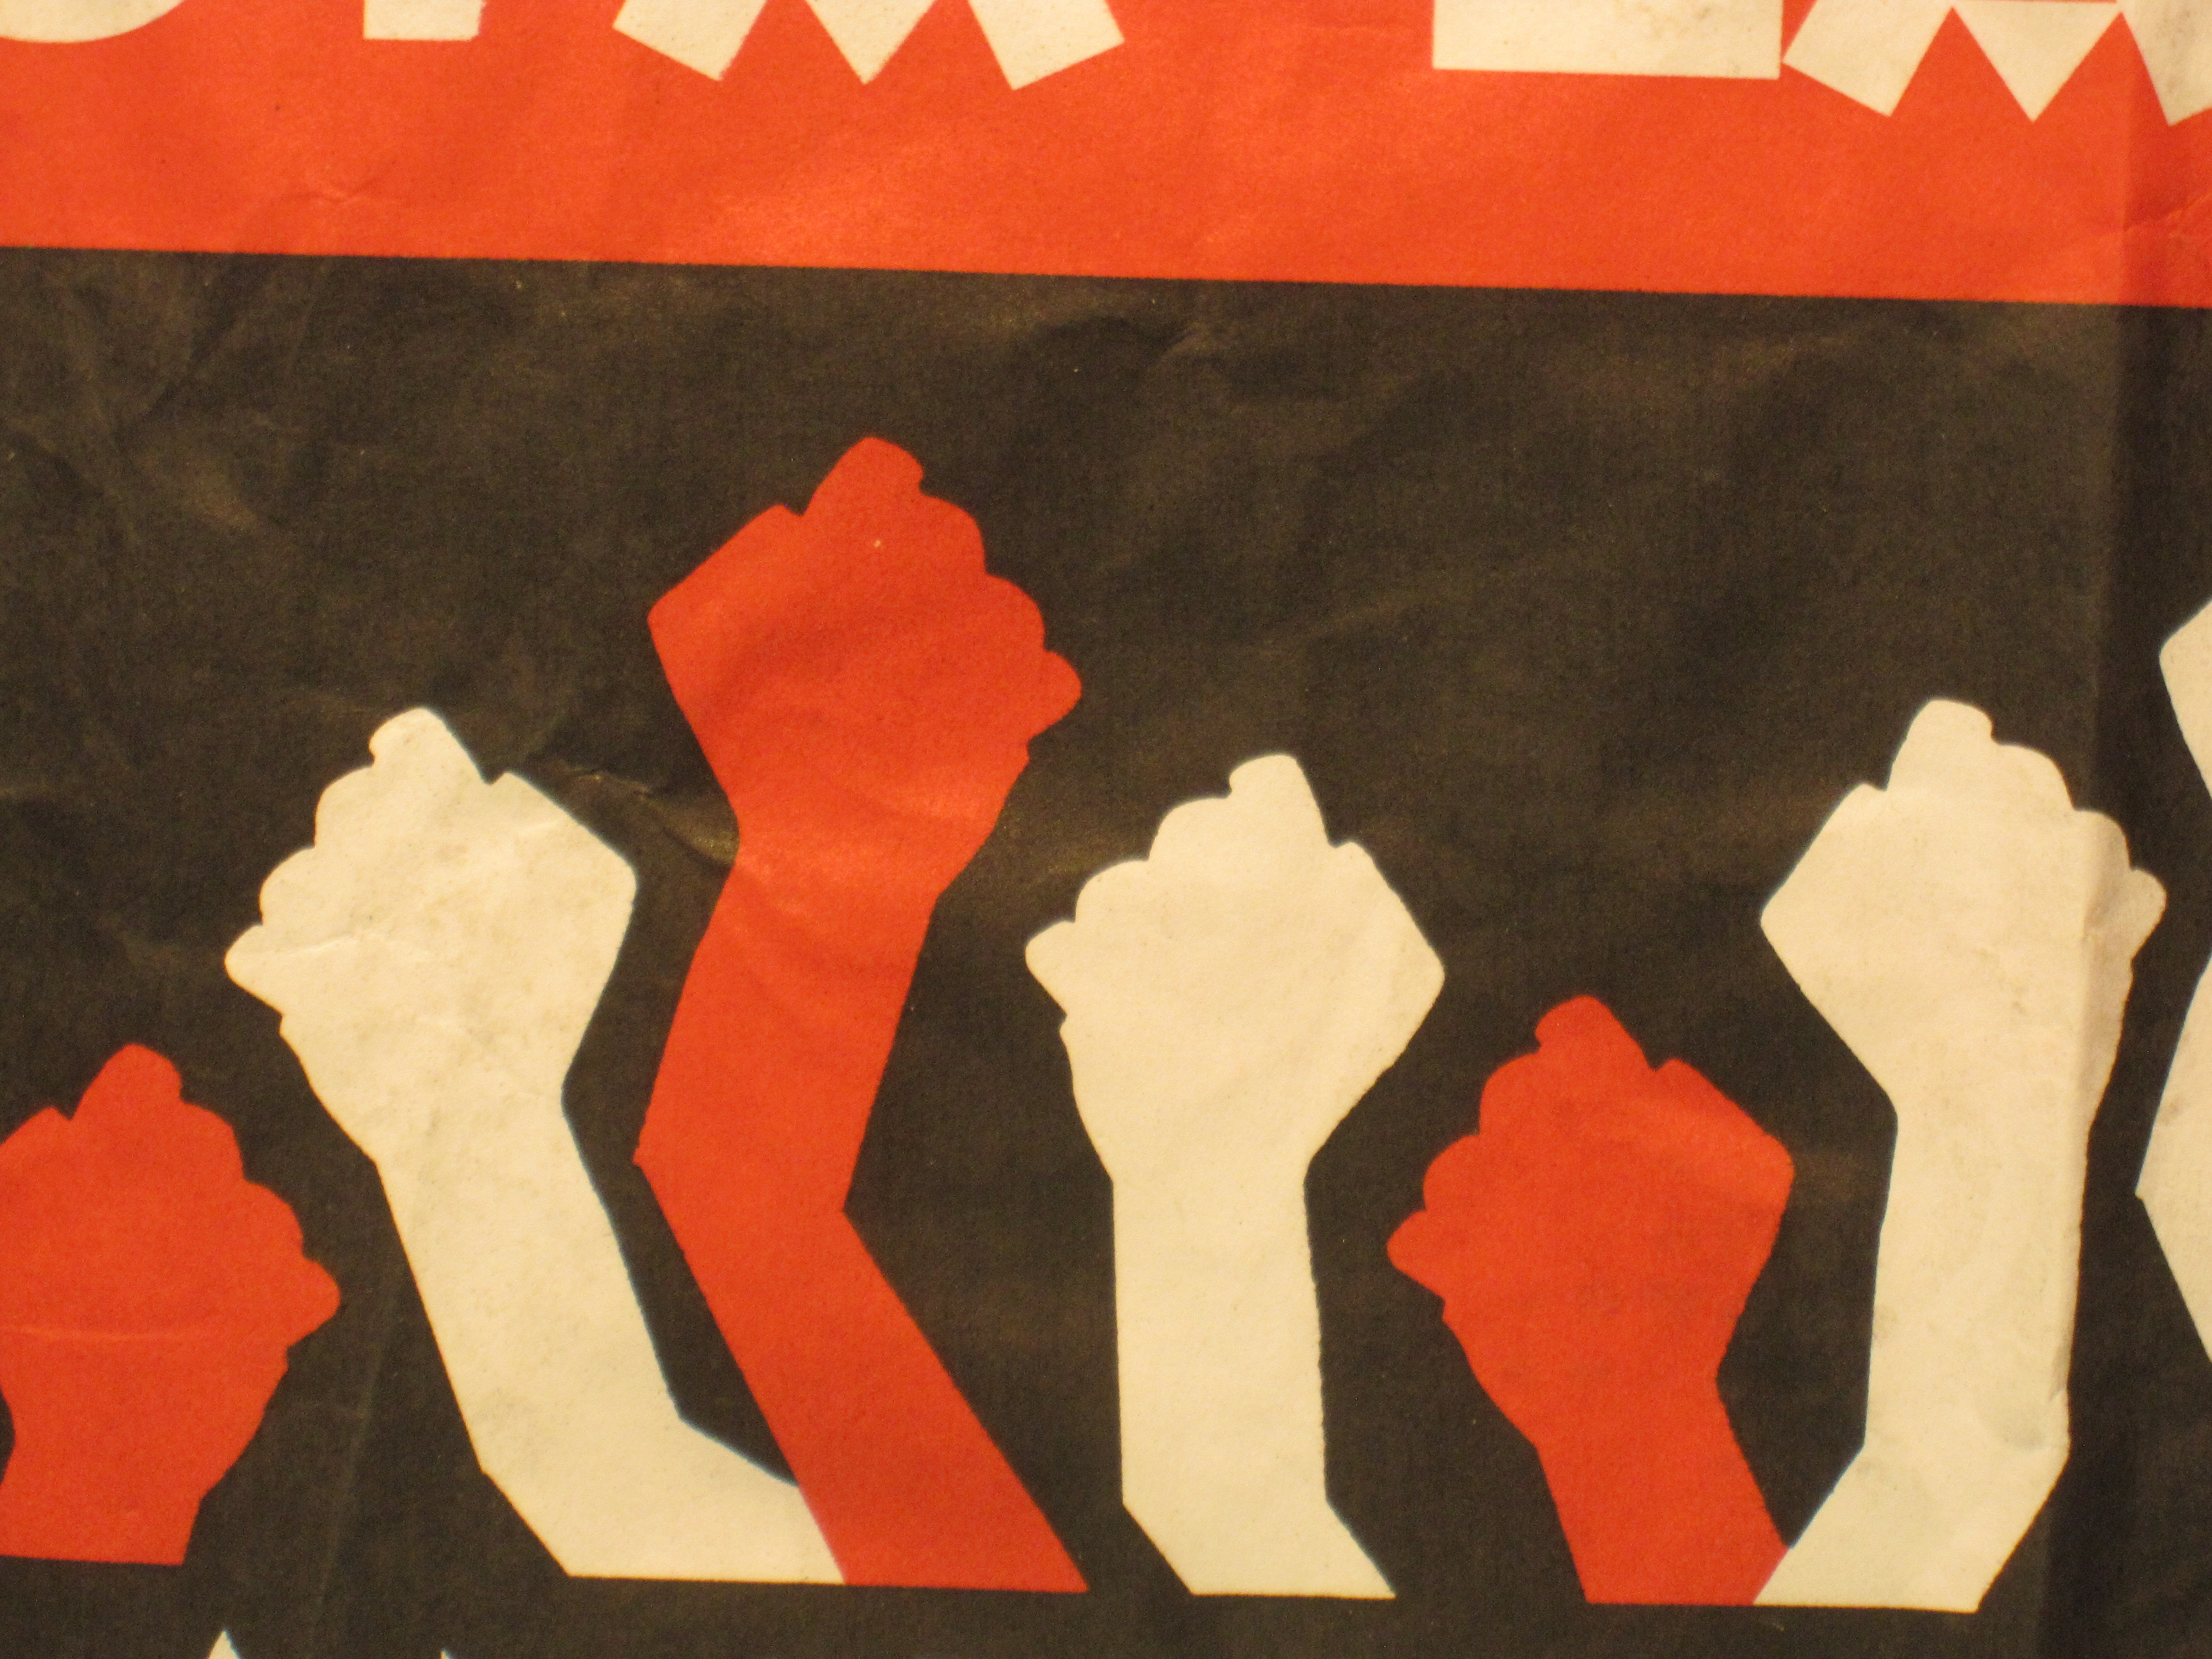 Raised Fist Political Art Research Project